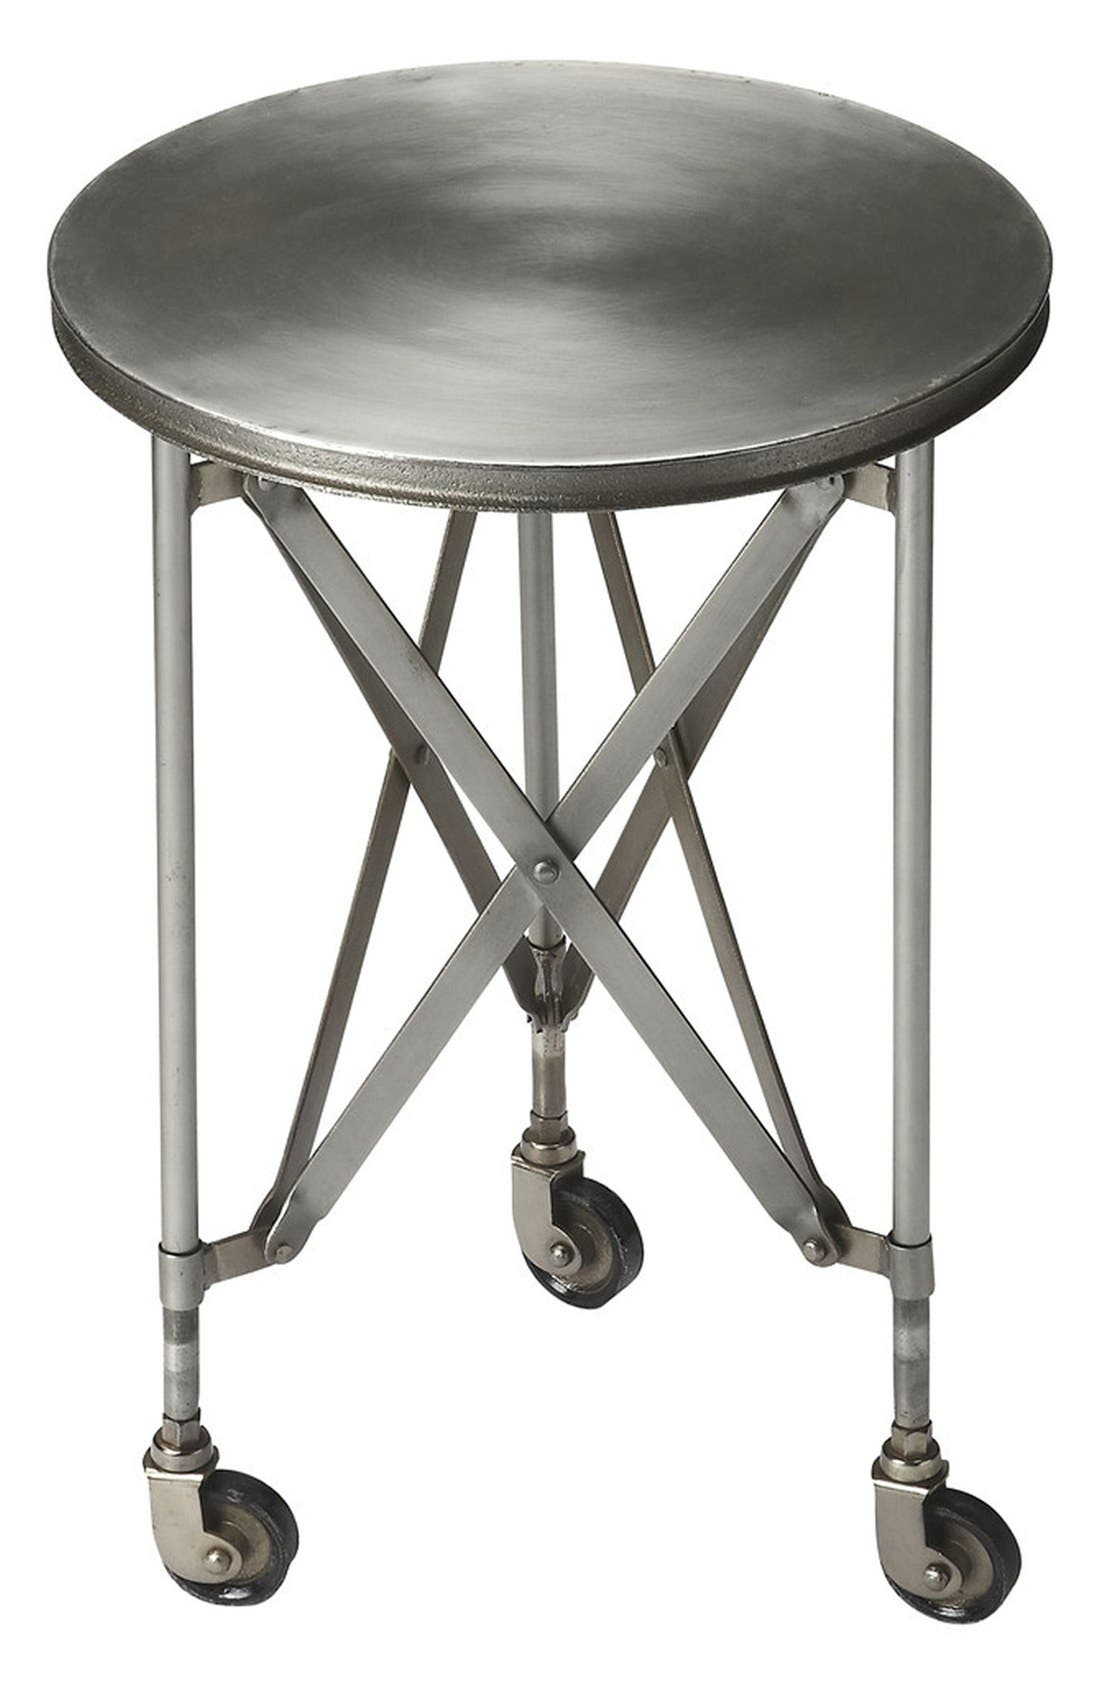 Main Image - Butler Iron Accent Table